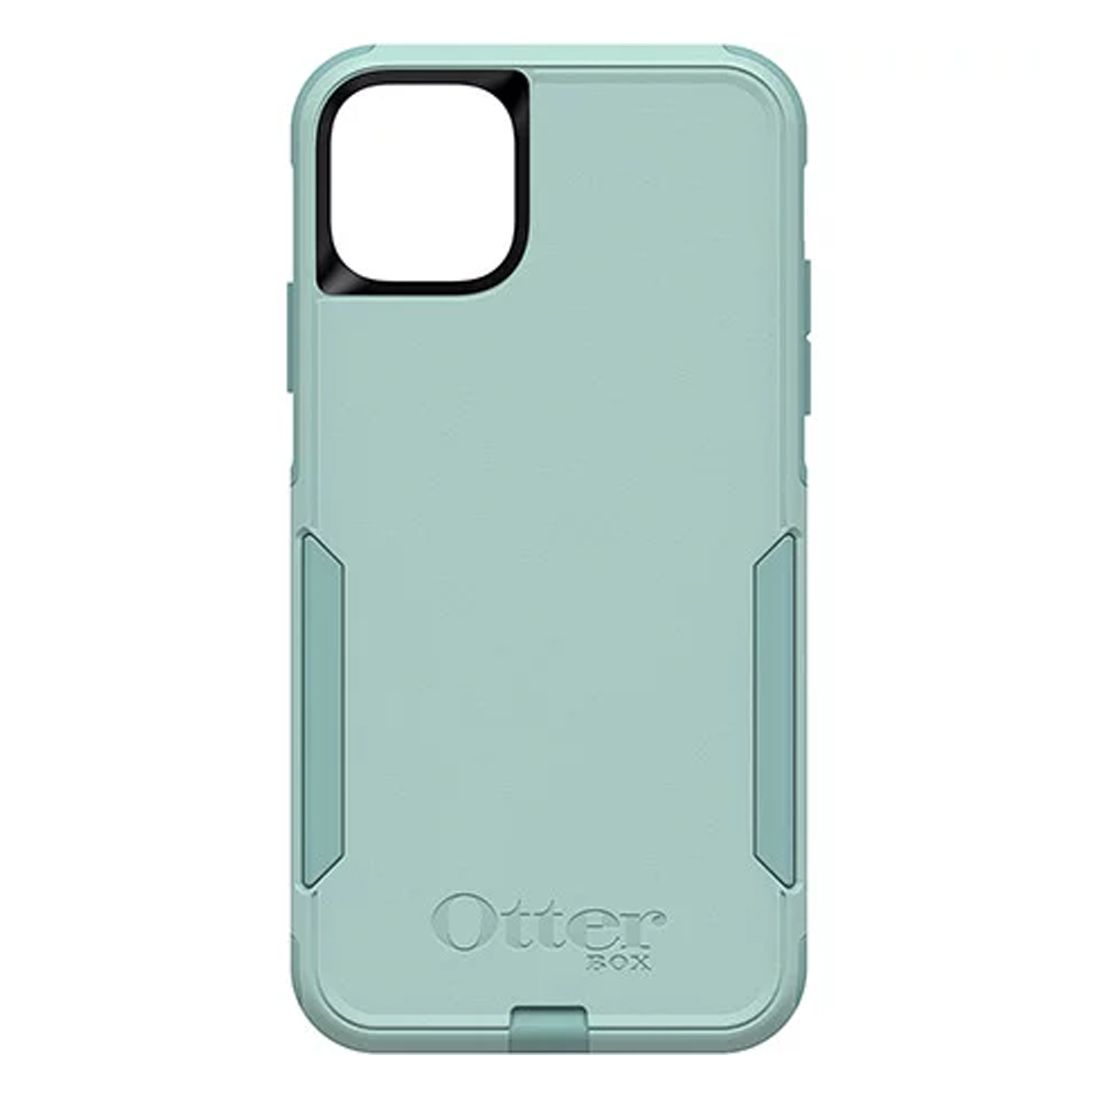 Otterbox Commuter Case for Apple iPhone 11 Pro Max - Mint Way